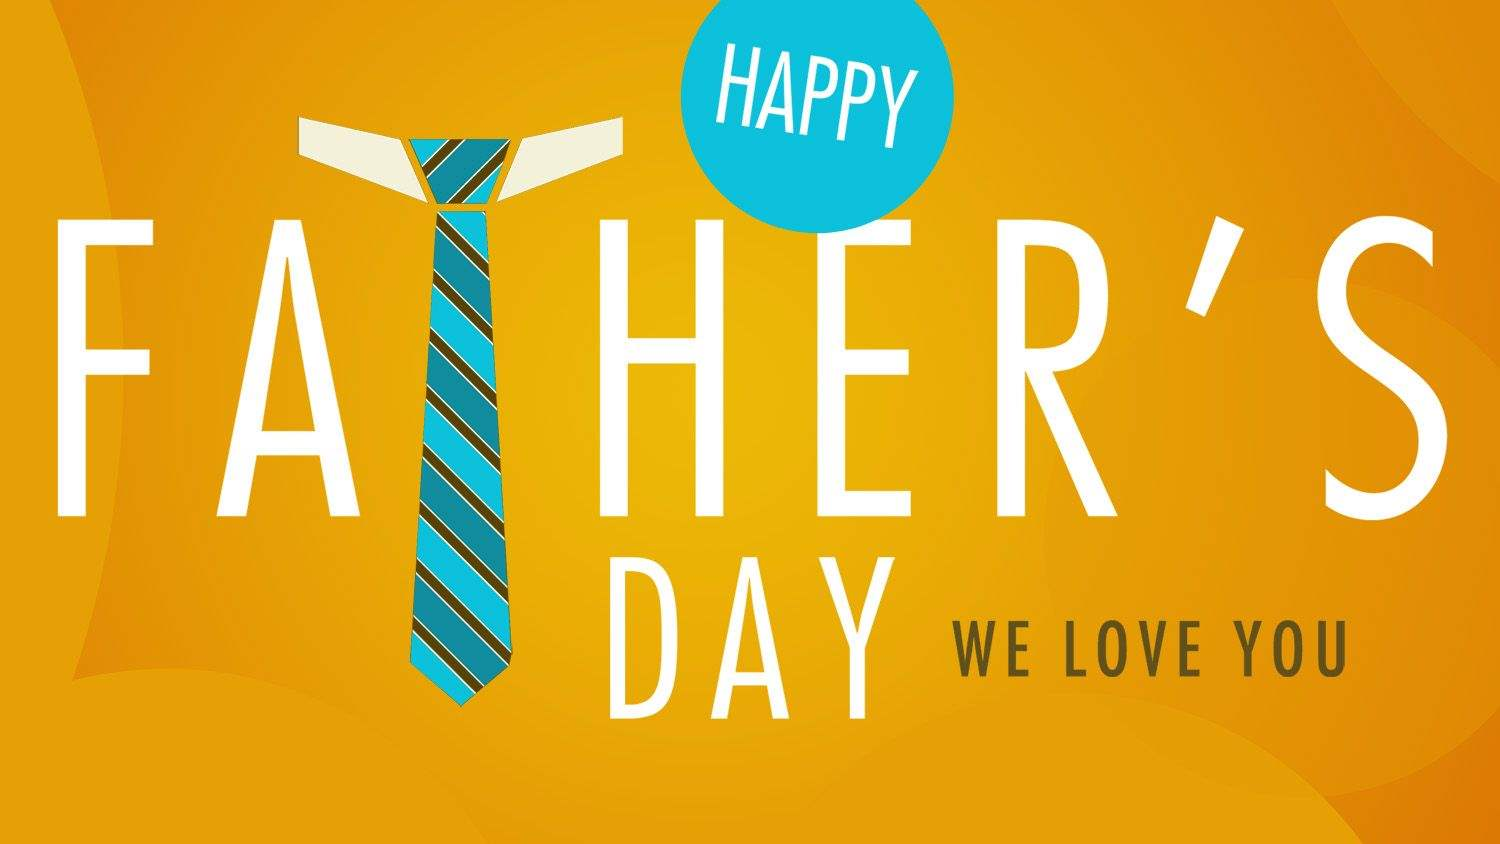 Fathers Day Quotes From Daughter Wallpapers Unique And Amazing Ways To Celebrate Fathers Day